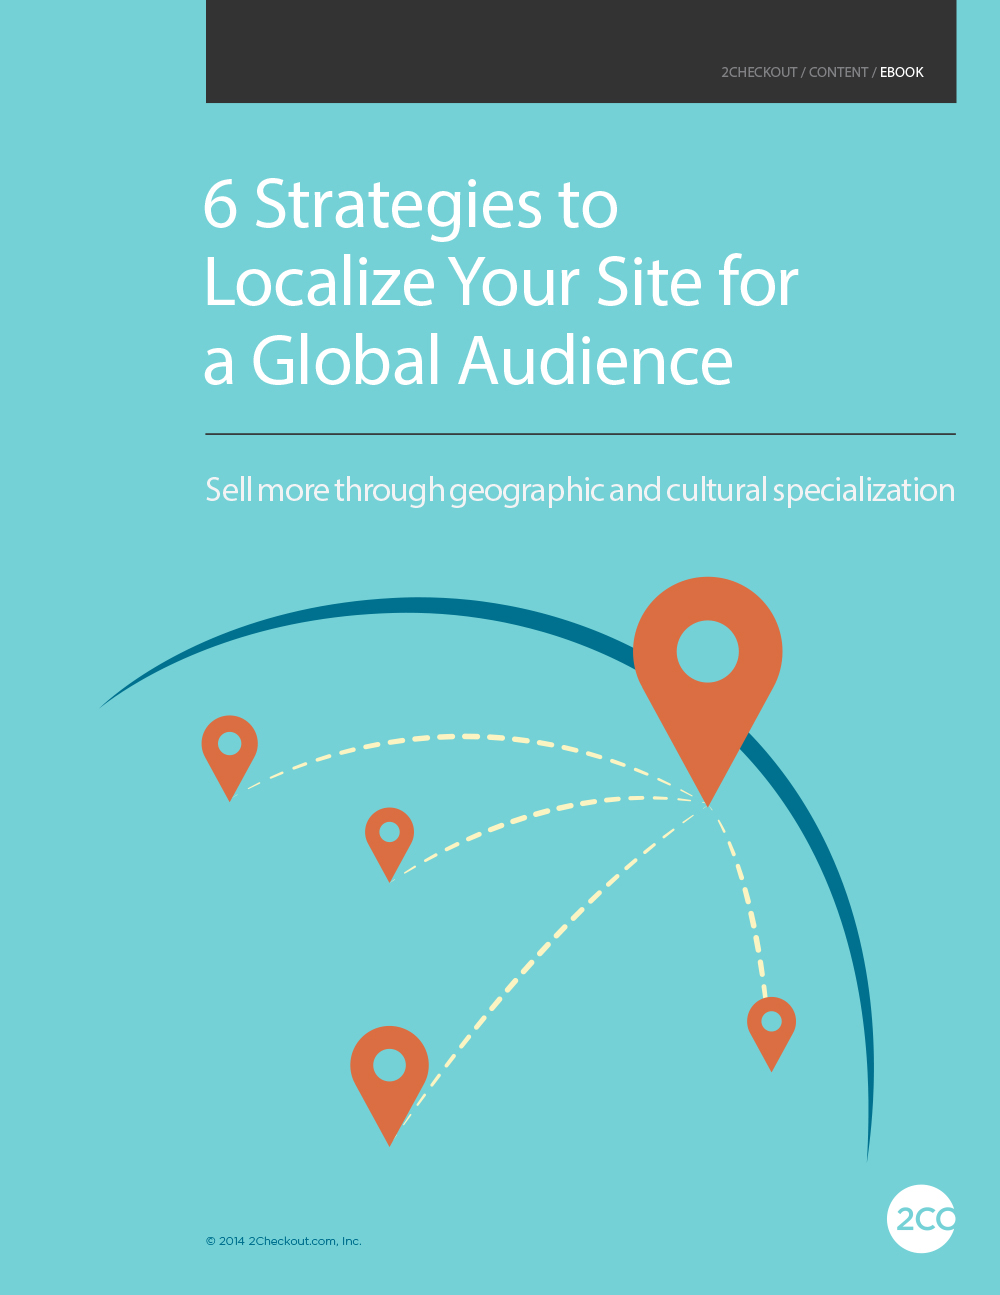 6 Strategies to Localize Your Site for a Global Audience